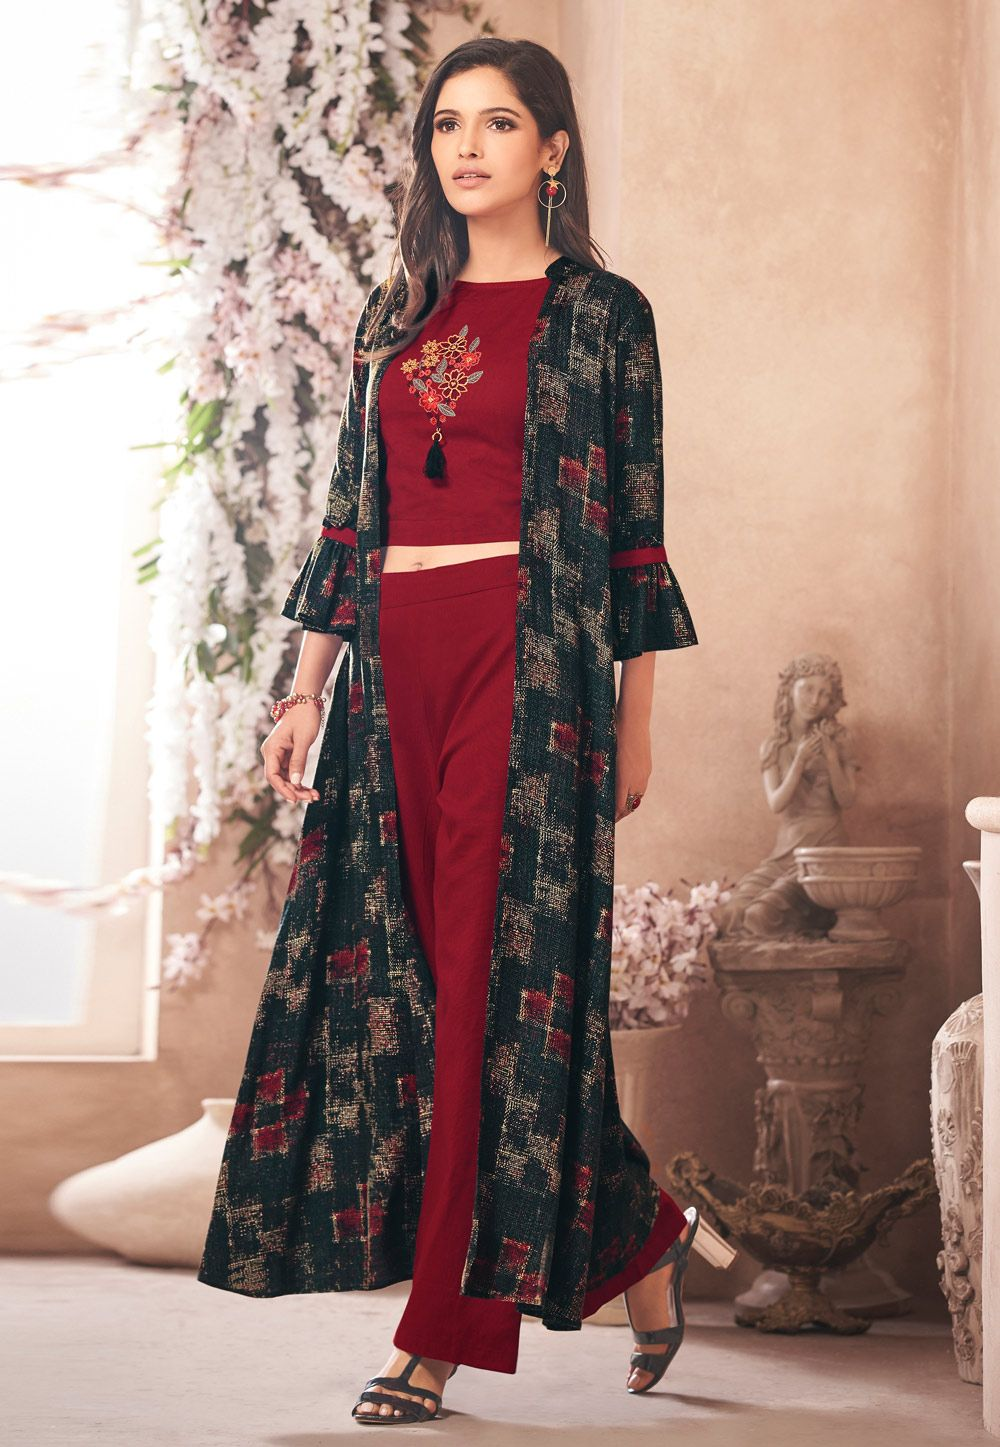 d9efbabc1a Buy Maroon Rayon Readymade Palazzo Suit With Jacket 157560 online at lowest  price from huge collection of salwar kameez at Indianclothstore.com.